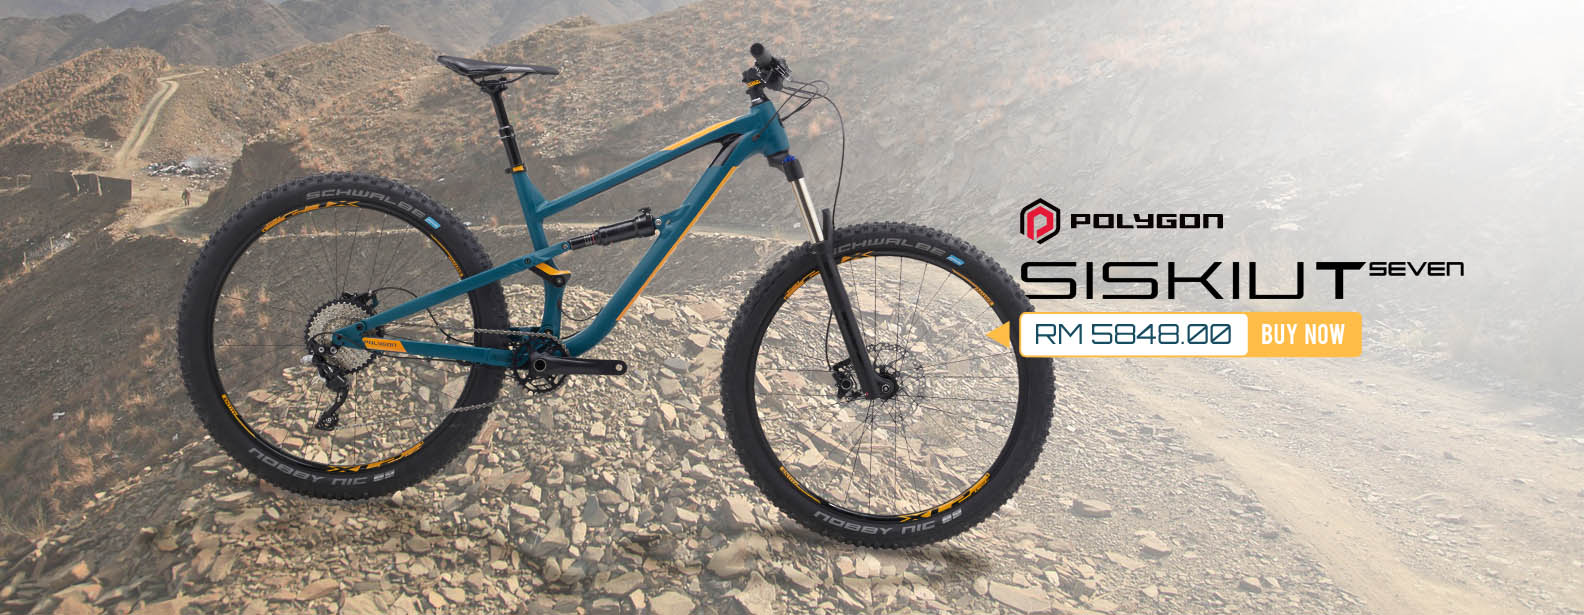 Polygon Siskiu T7 Dual Suspension Bike